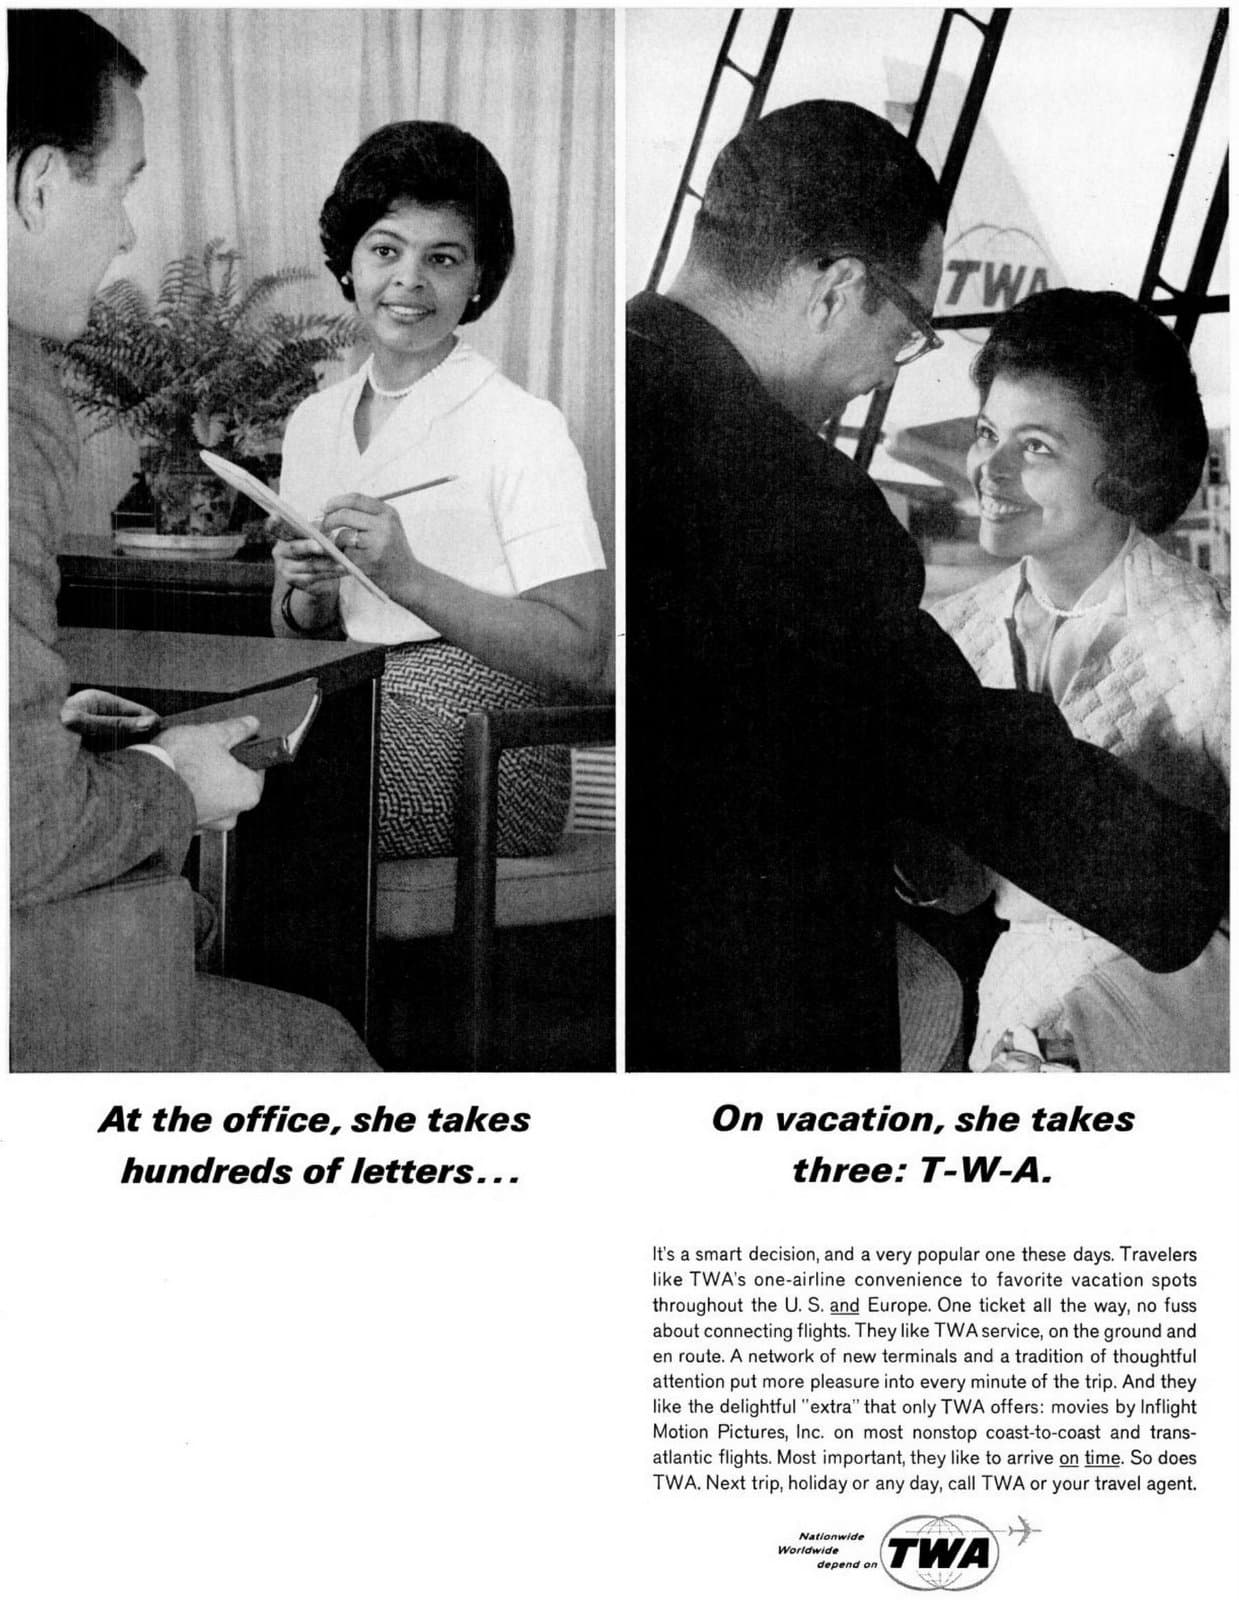 TWA vacations - Airline history (1965)